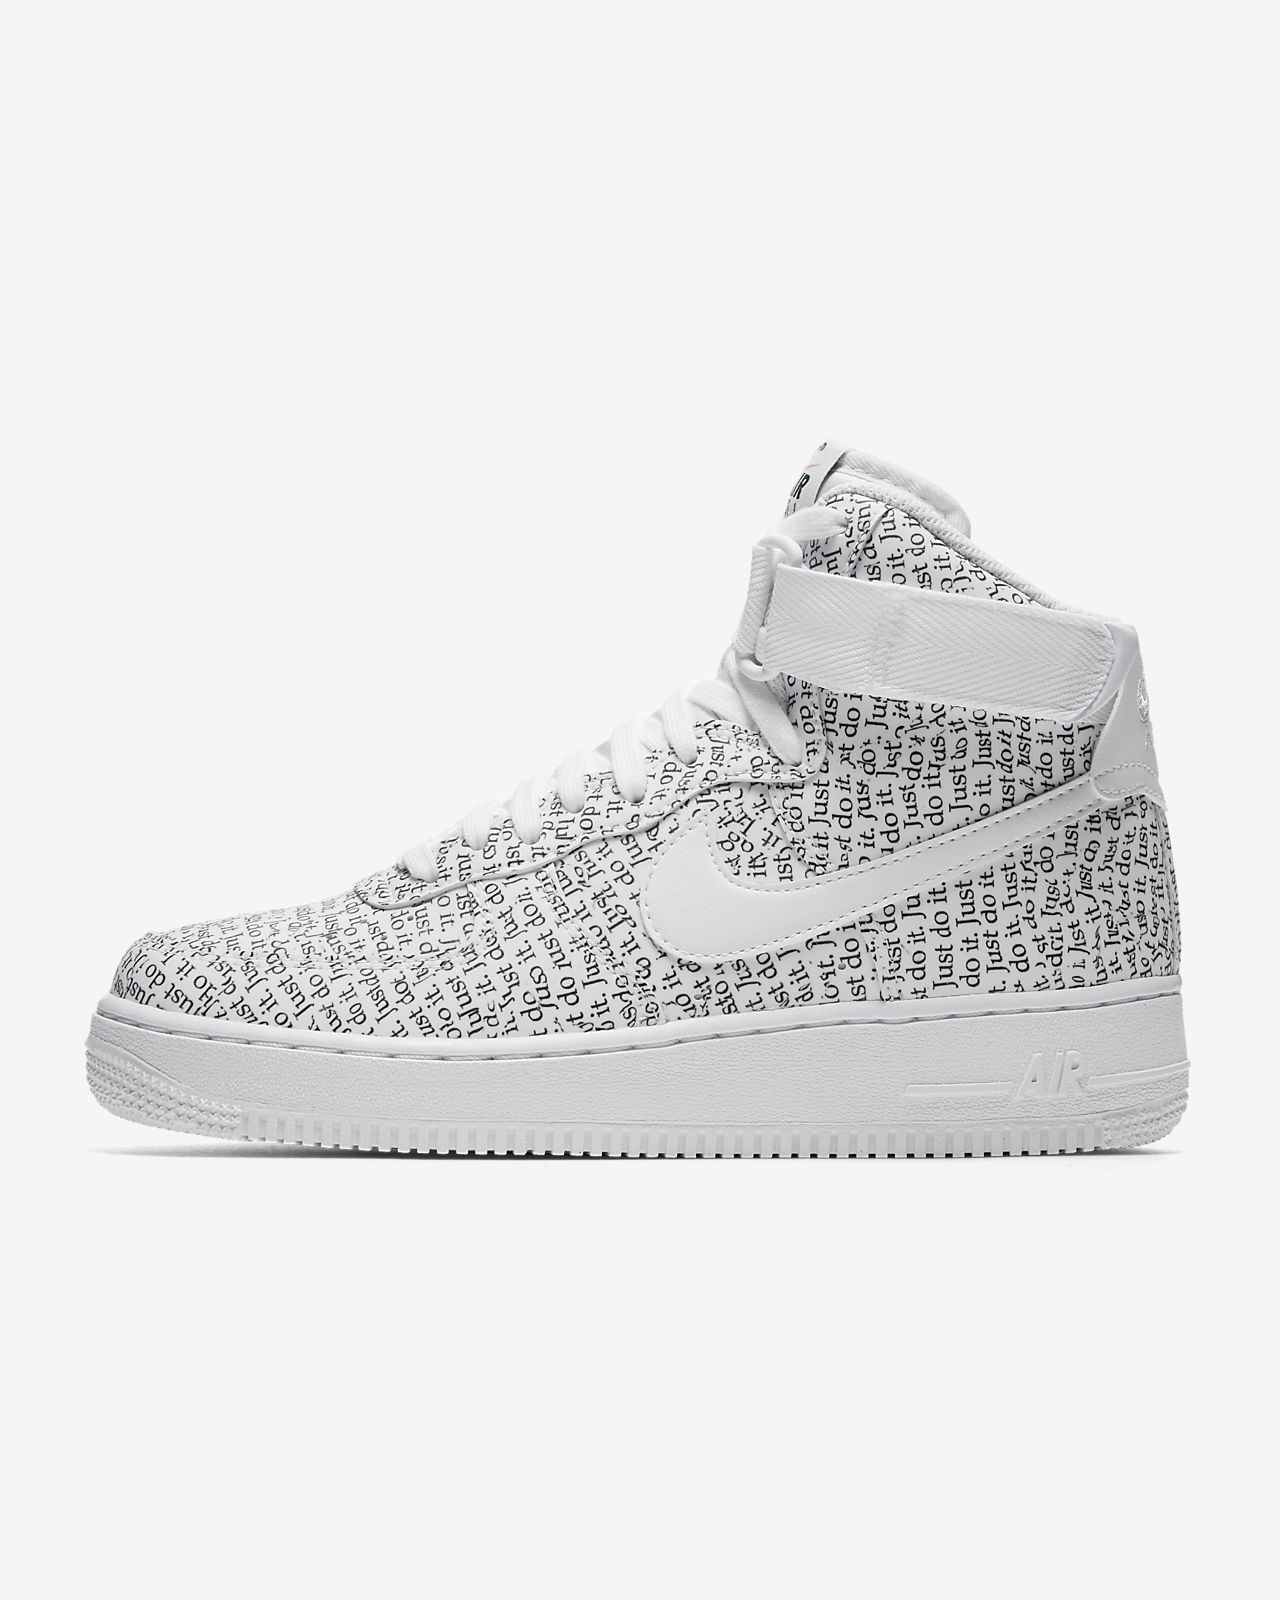 2018 Reigning Champ Nike AIR FORCE 1 Copuon